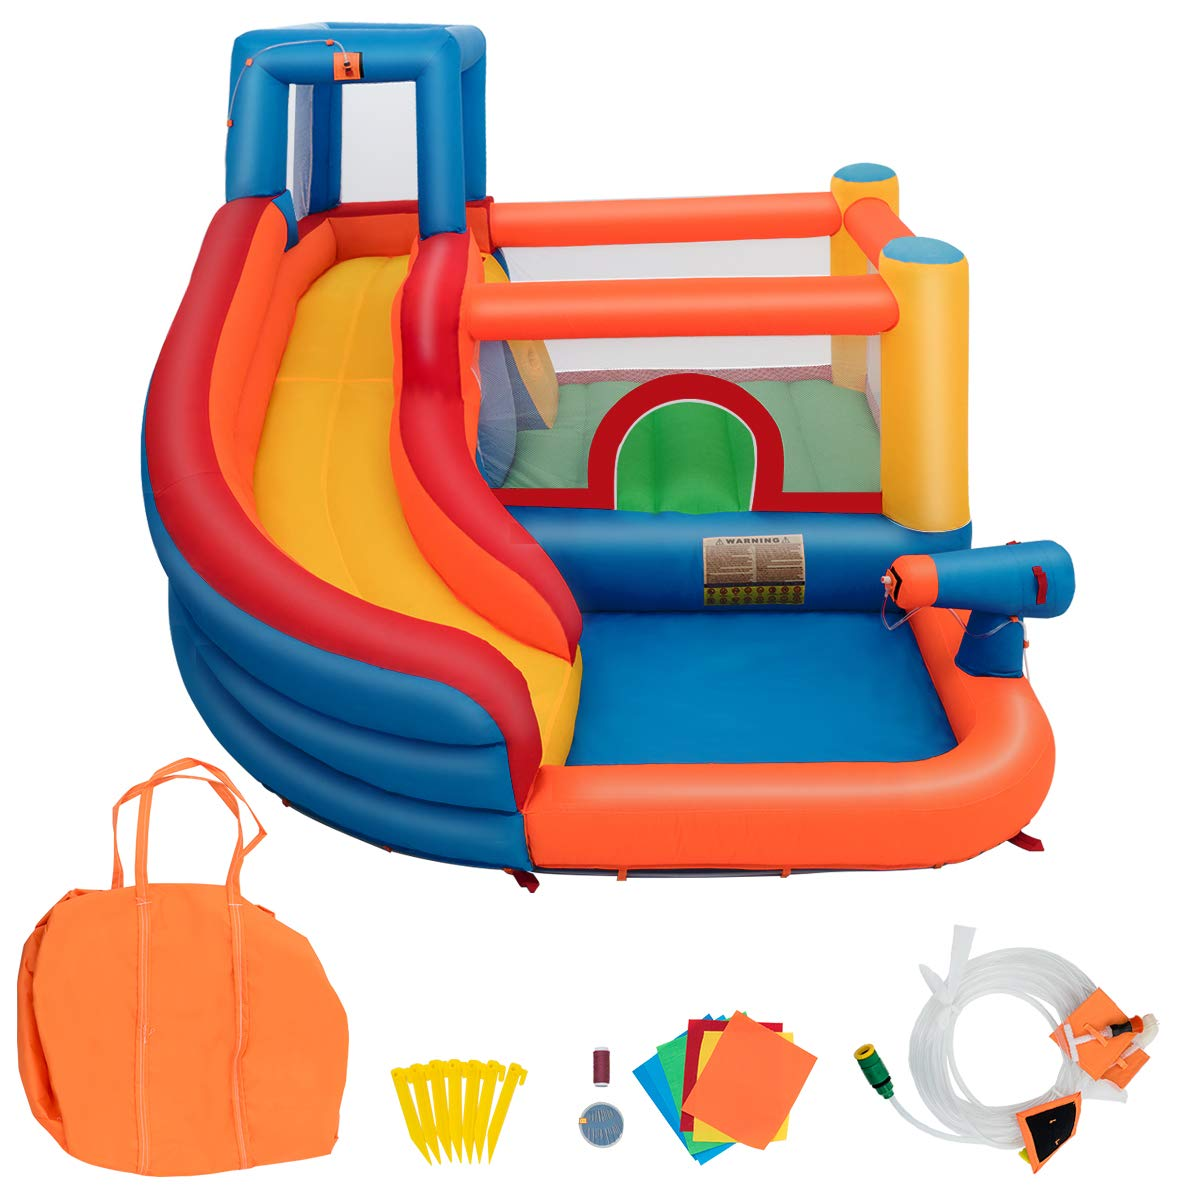 Costzon Inflatable Bounce House, 5-in-1 Water Slide w/ Climbing Wall, Jumping Area, Splash Pool, Water Cannon, Including Oxford Carry Bag, Repairing Kit, Stakes, Hose, Without Blower by Costzon (Image #6)